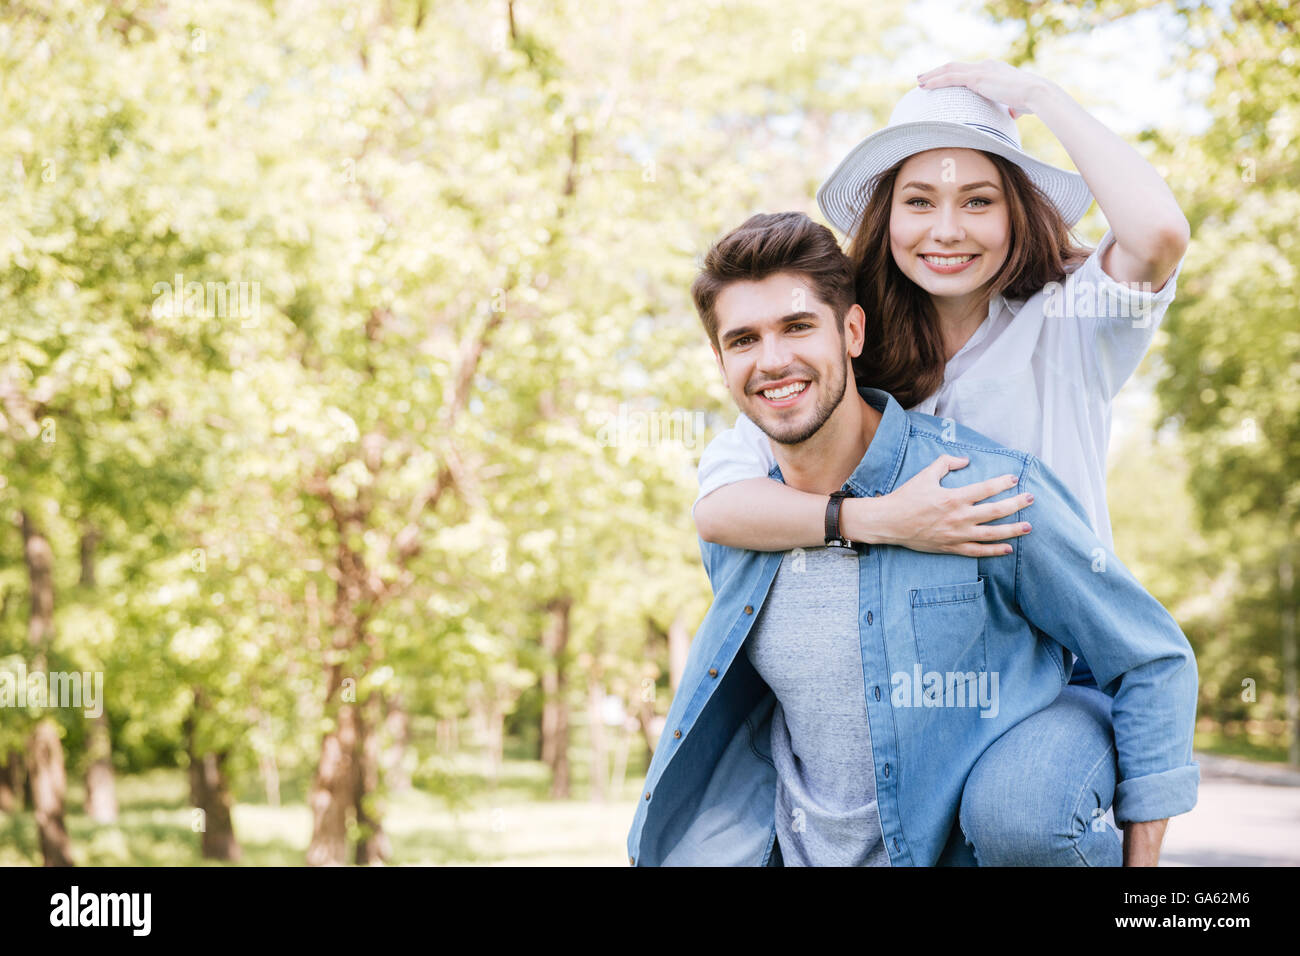 Portrait of a happy young smiling couple having fun outdoors in the park - Stock Image